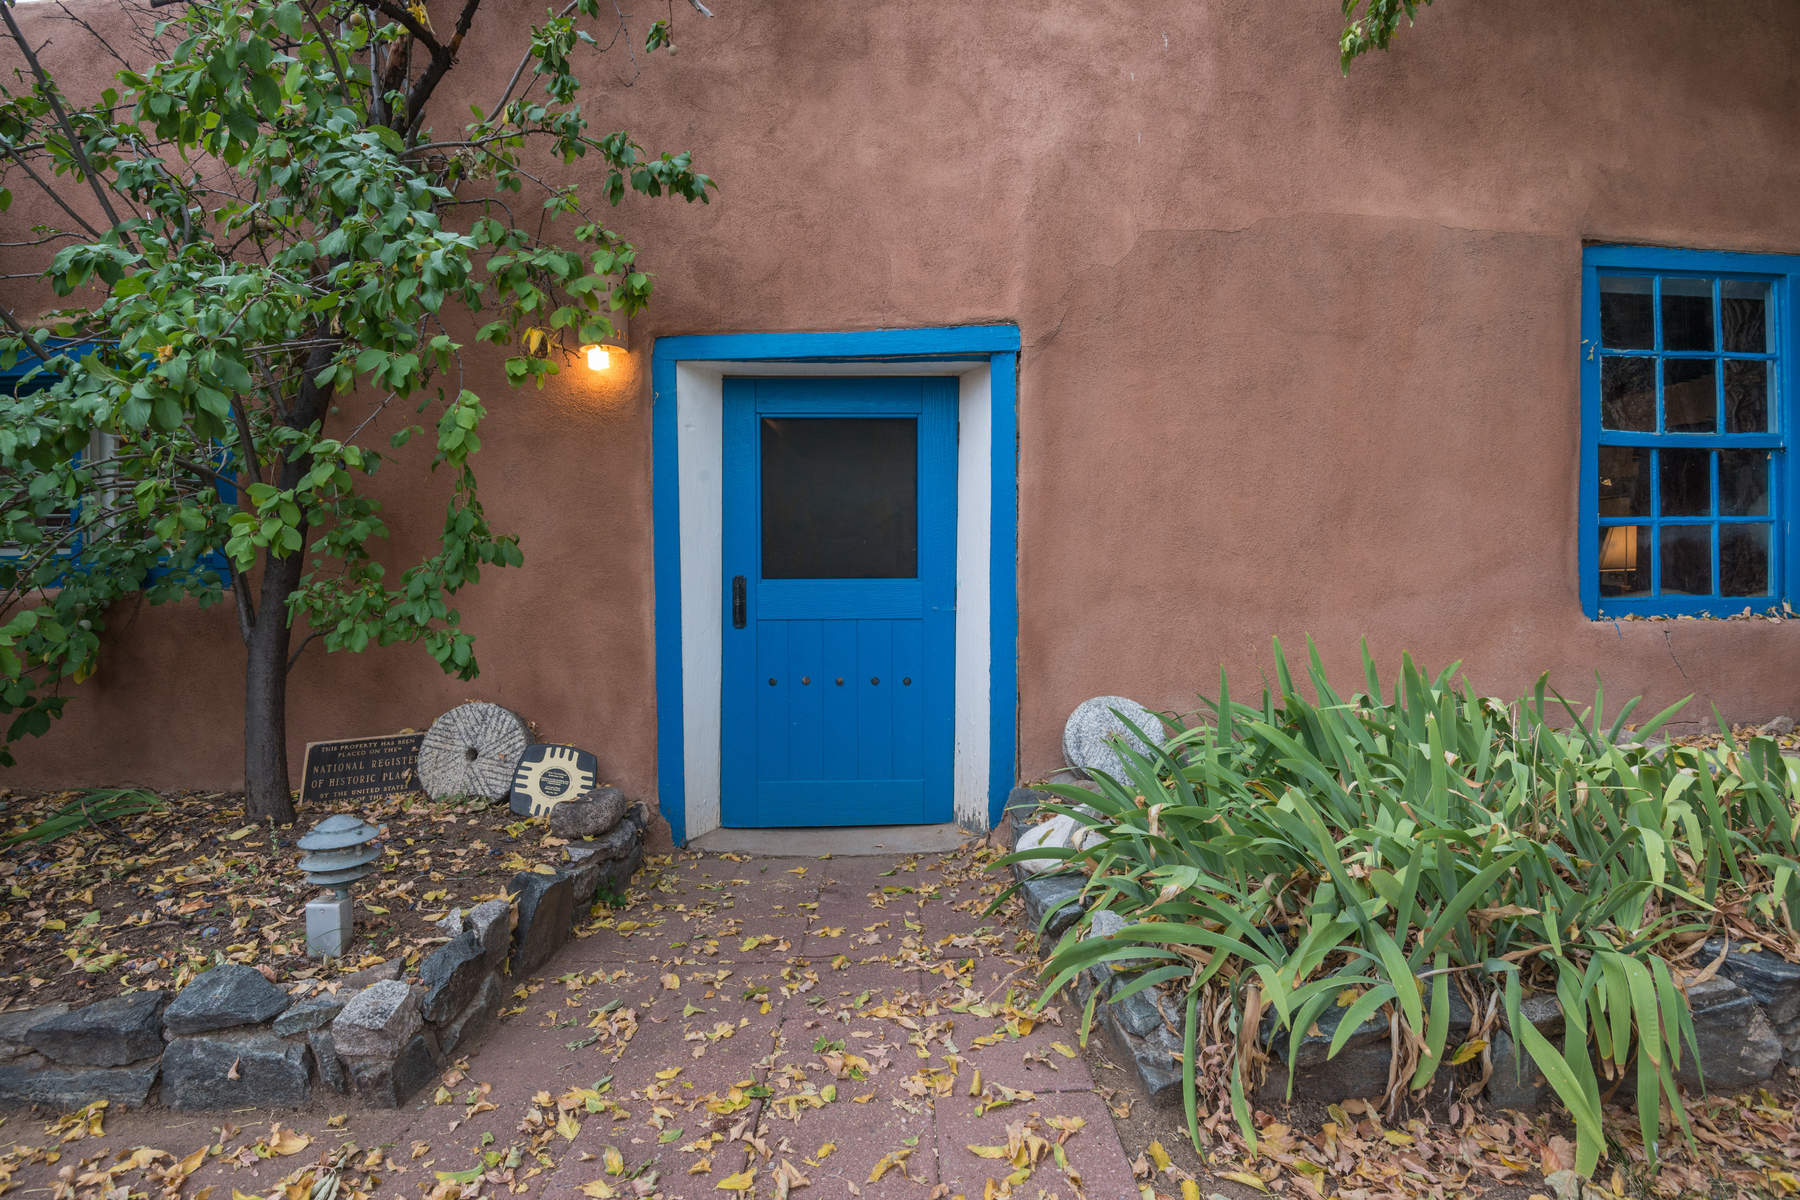 Single Family Home for Sale at 108 La Loma Plaza Taos, New Mexico, 87571 United States